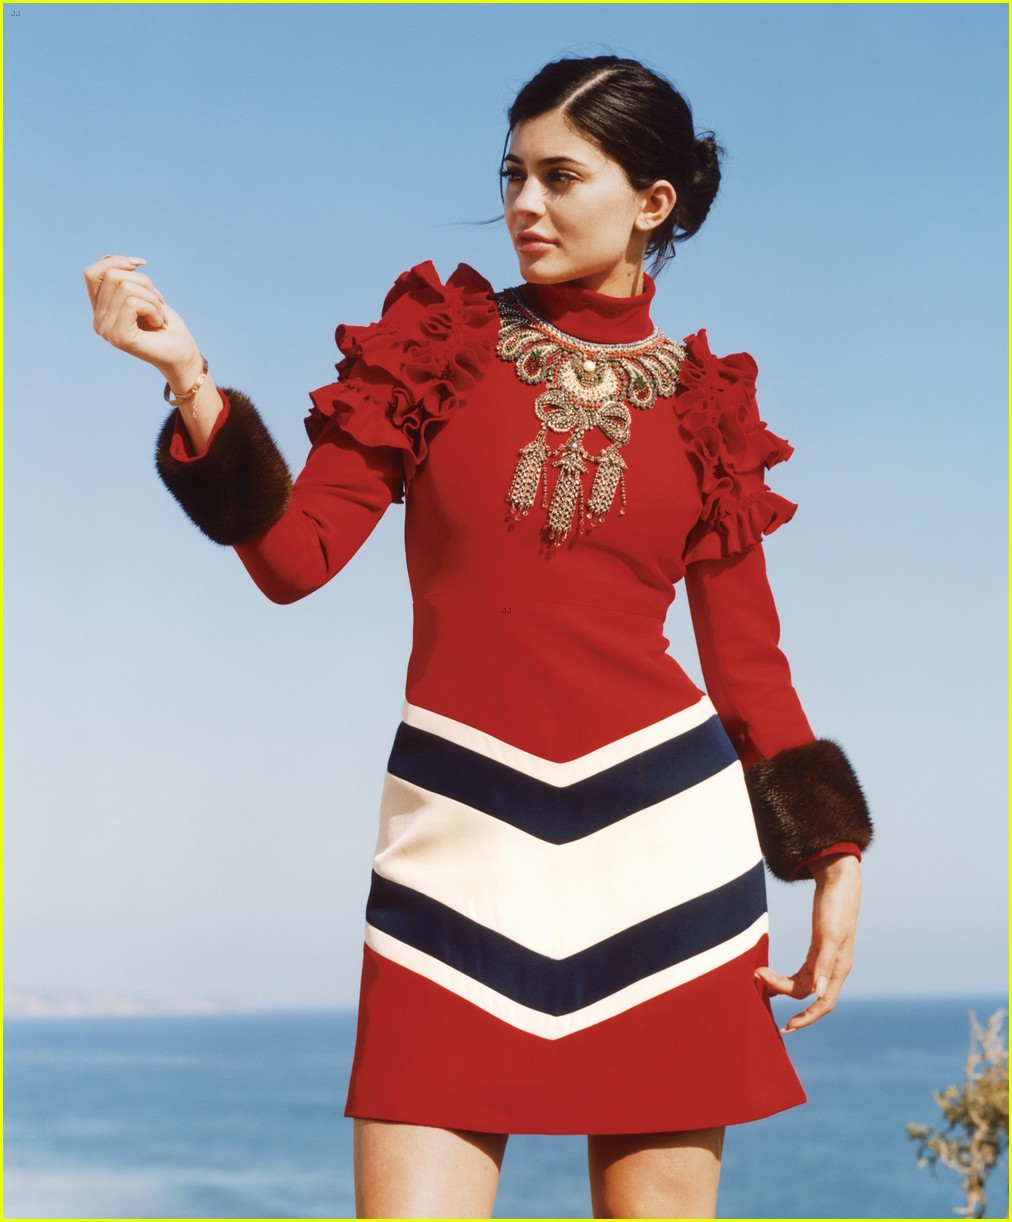 Kylie Jenner   Willow Smith Go High Fashion for  Vogue   Photo     Kylie Jenner   Willow Smith Go High Fashion for  Vogue